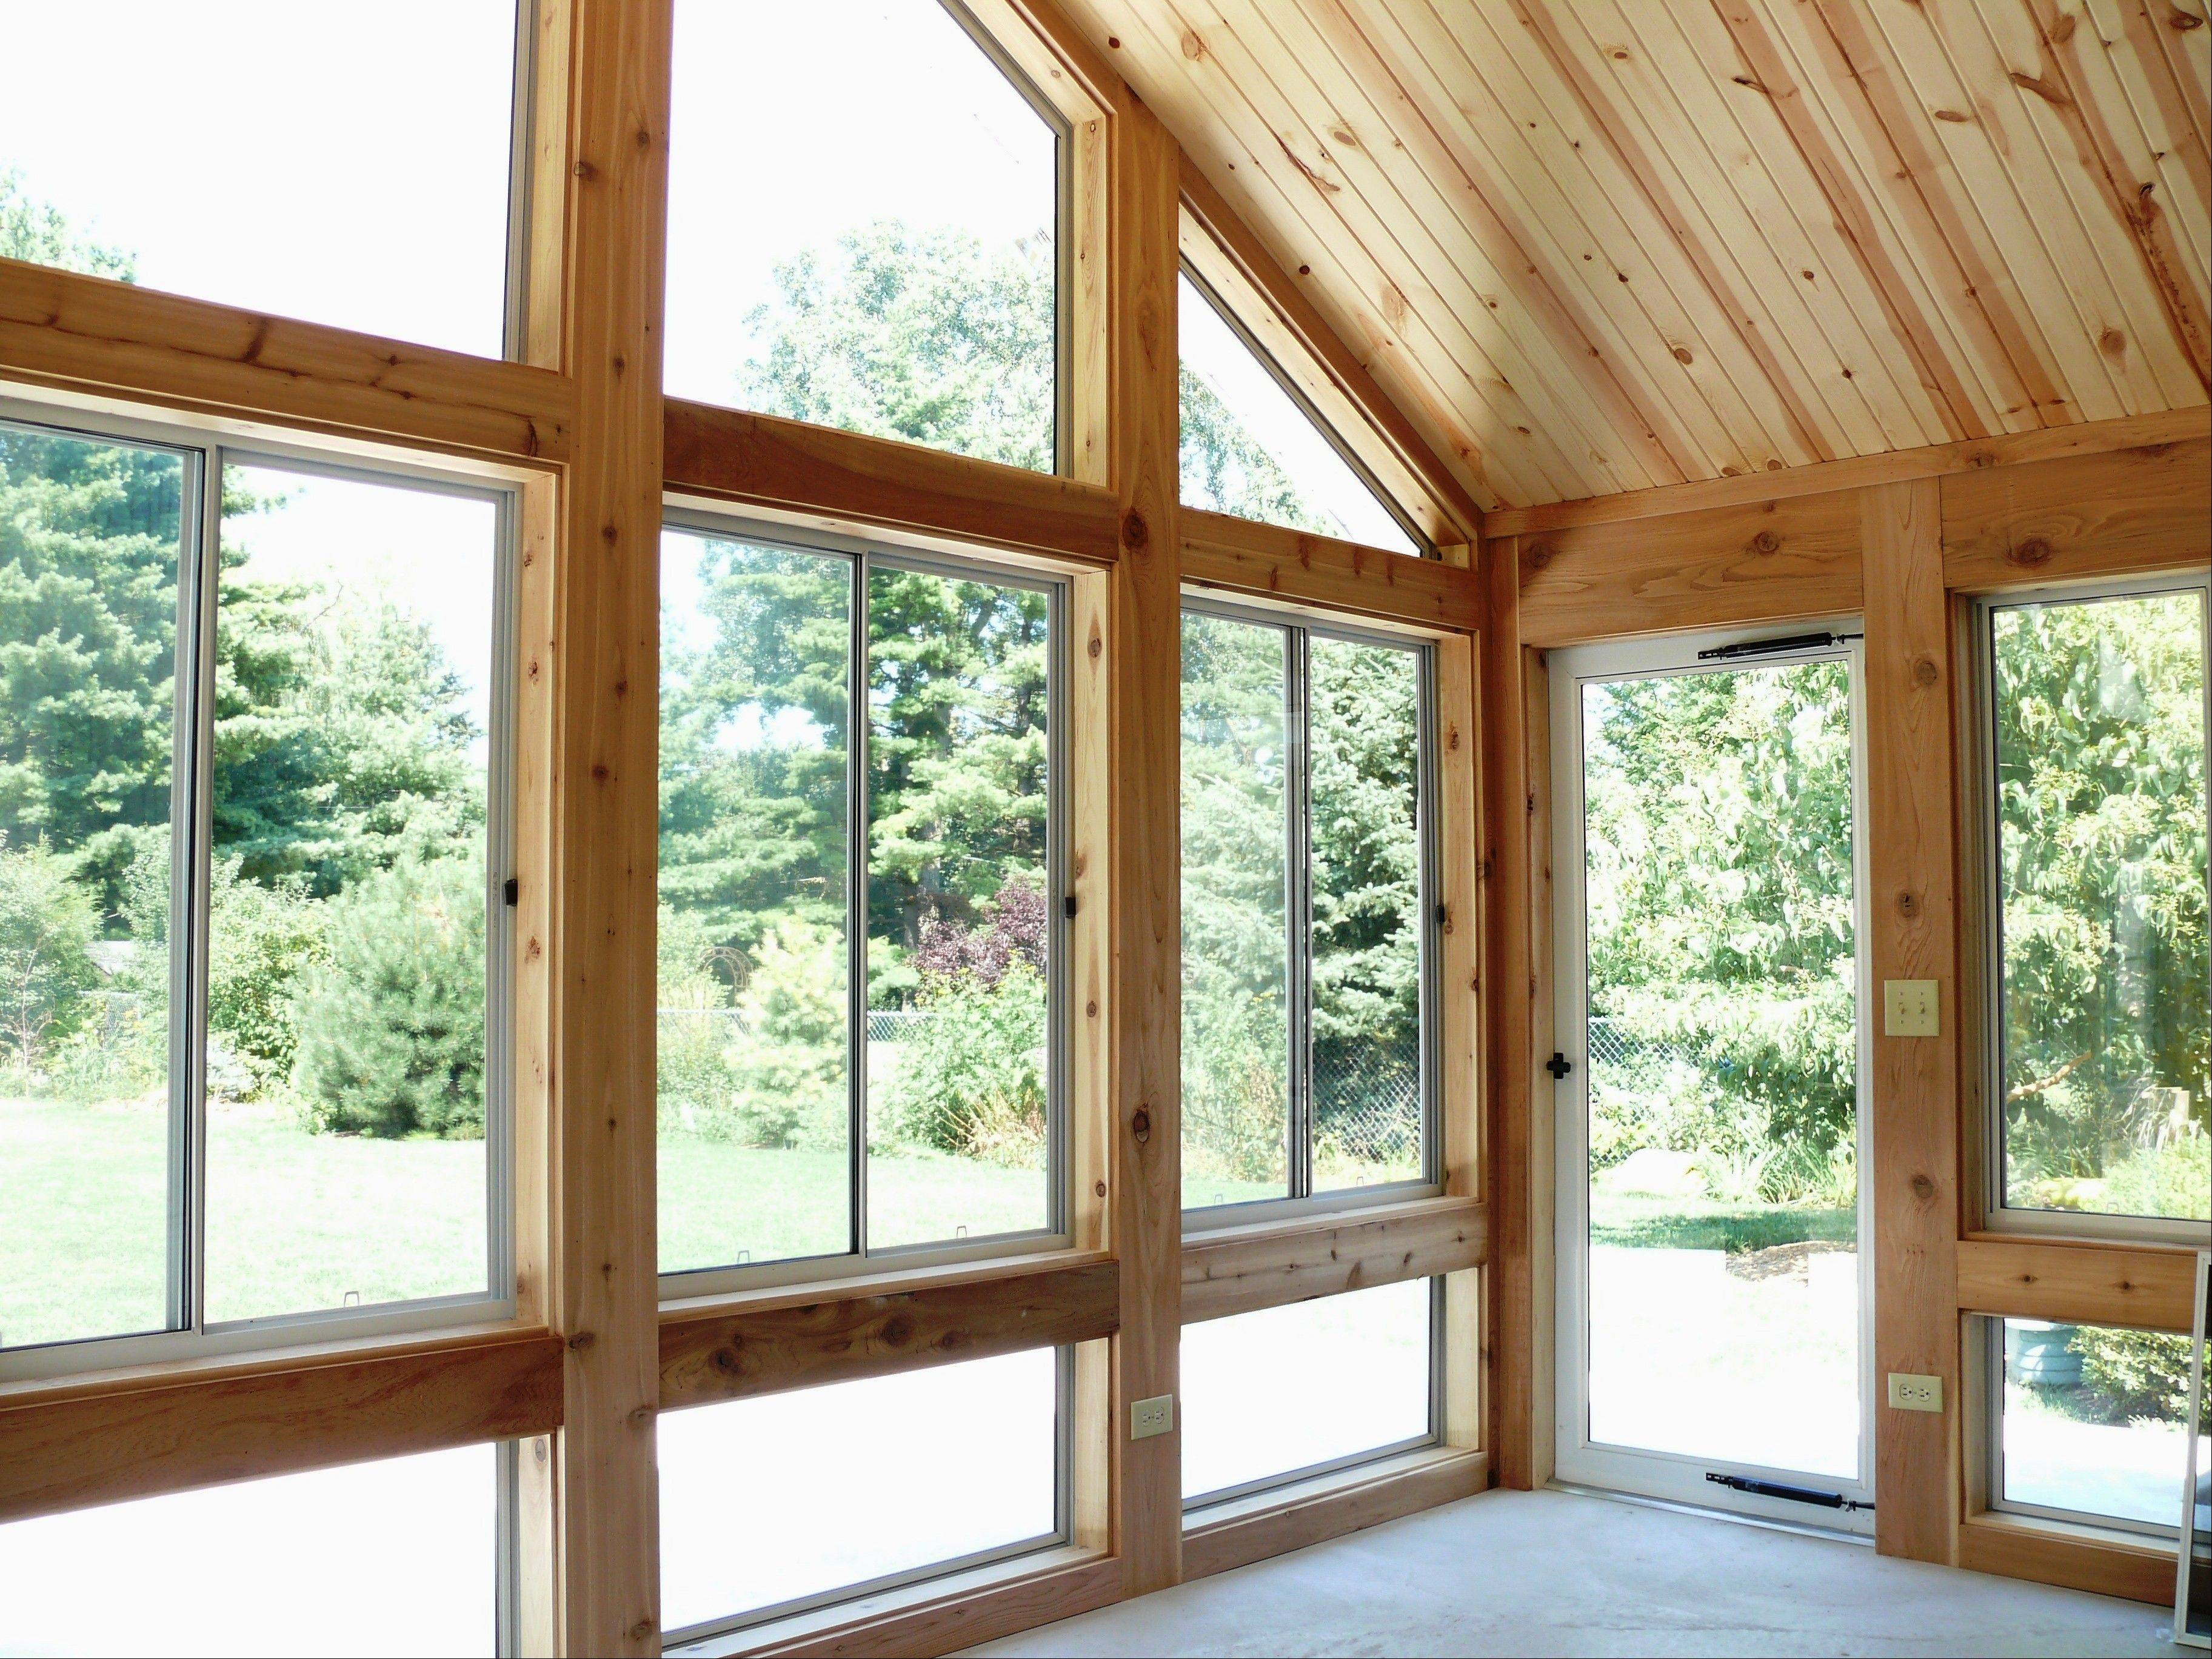 Timberbuilt sunrooms can have floor-to-ceiling, double-paned, argon-filled windows that are energy efficient.